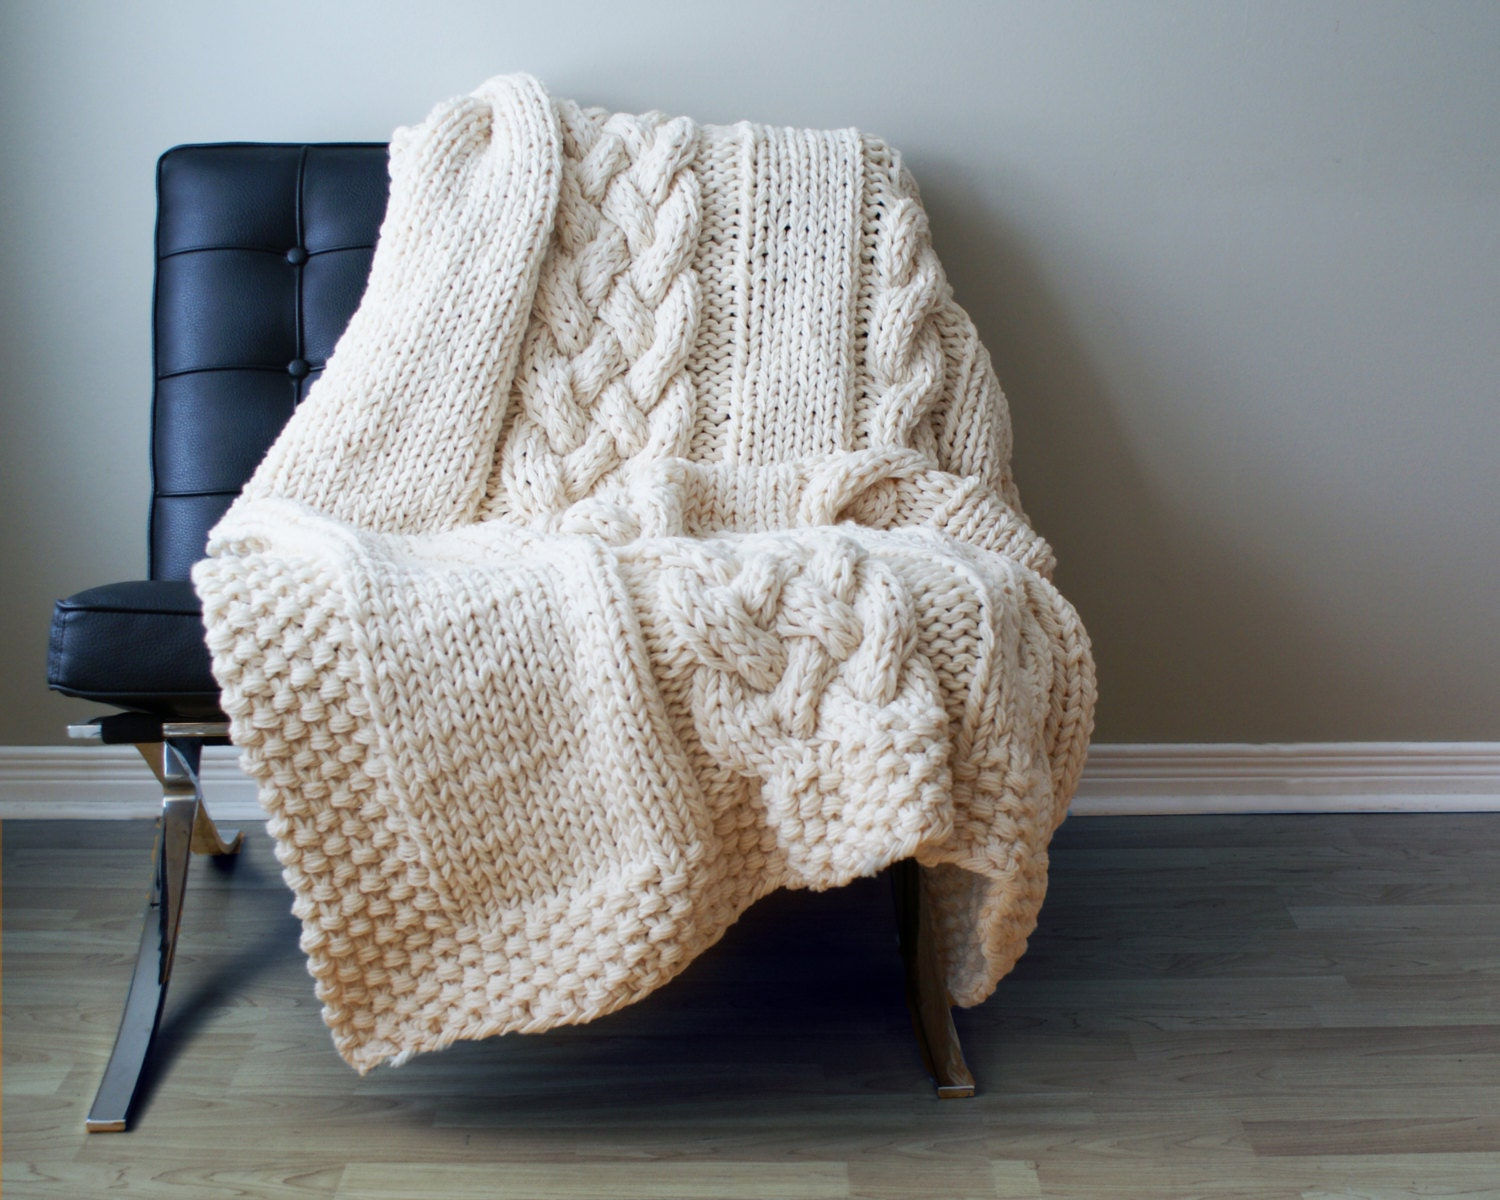 Knitting Pattern Blanket Throw : DIY Knitting PATTERN Throw Blanket / Rug Super Chunky Double